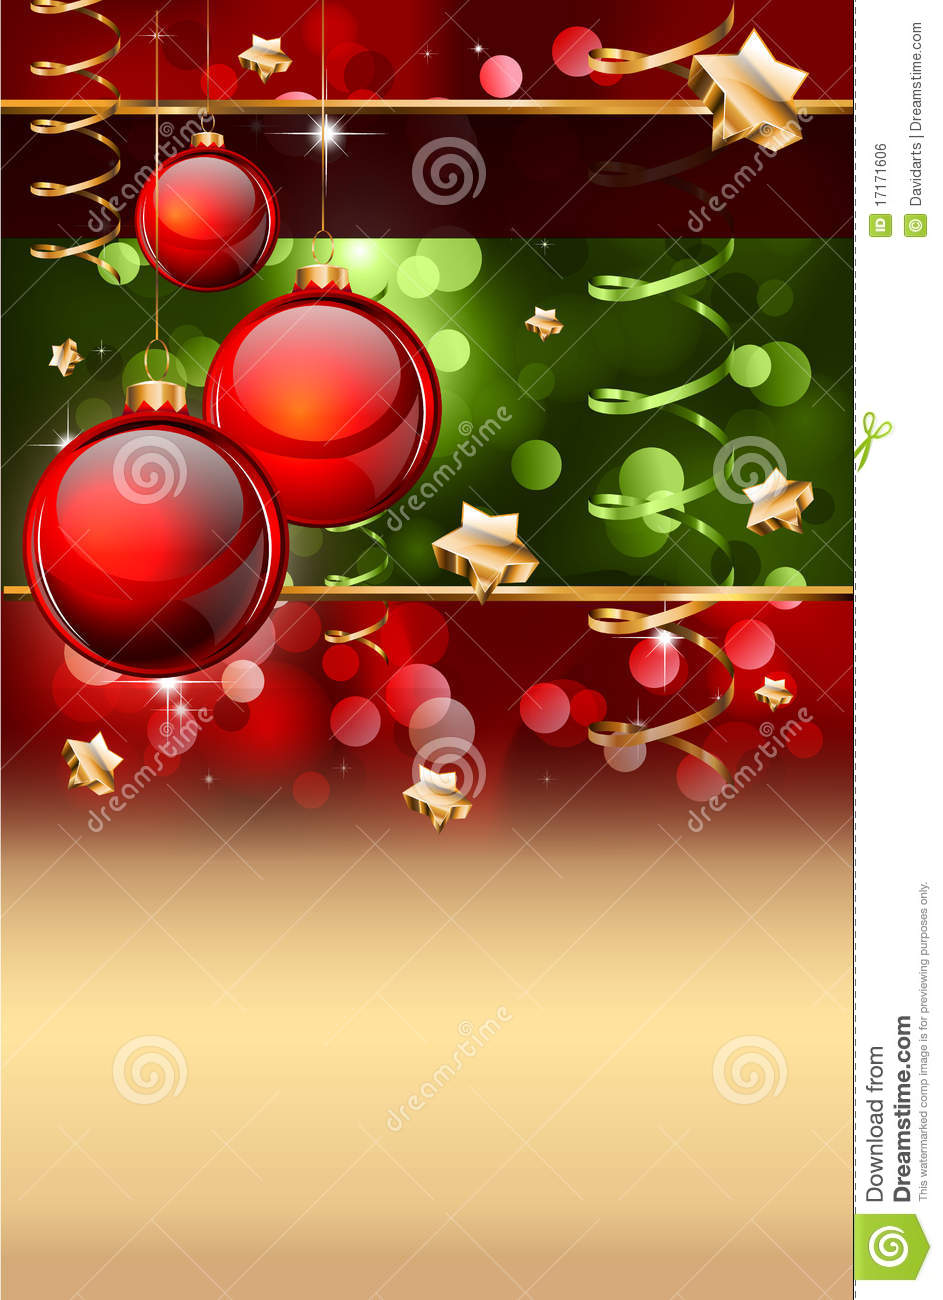 christmas elegant background for flyers or posters royalty